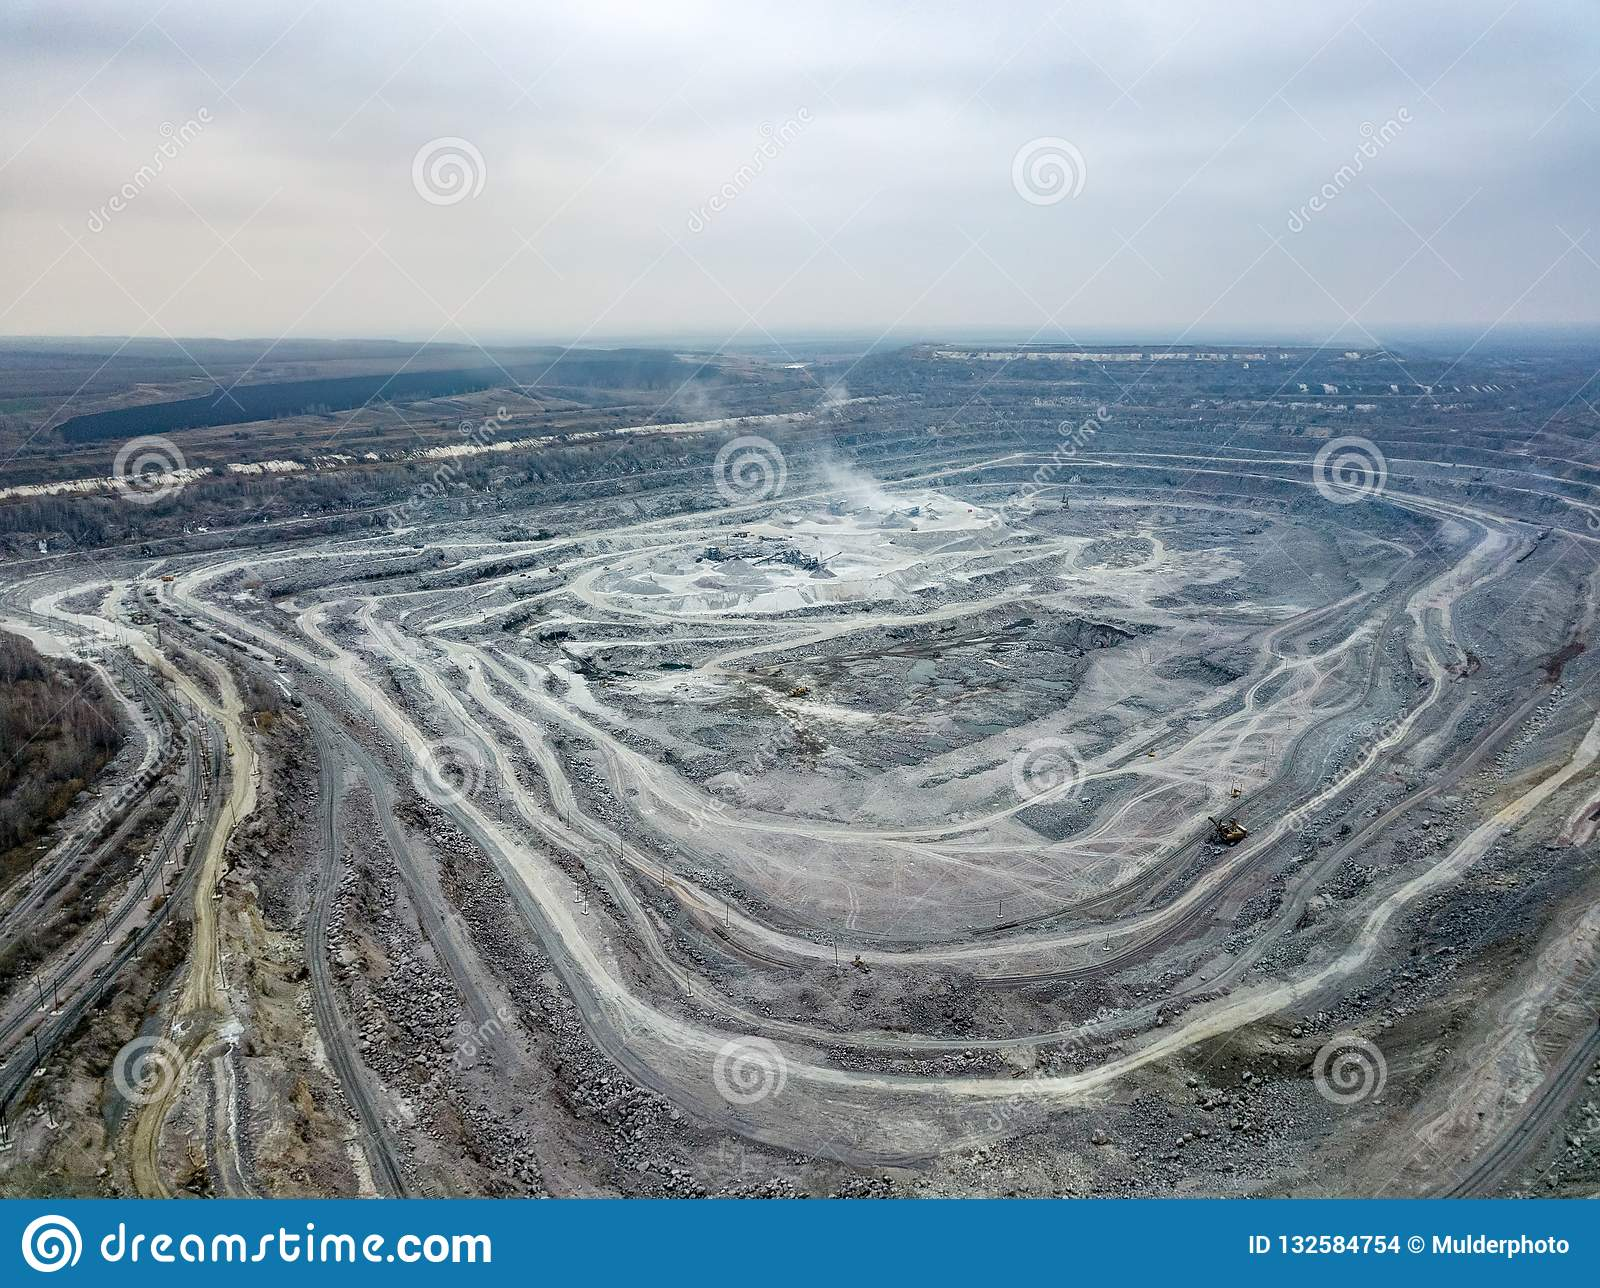 Open Pit Mine, Aerial View From Drone Stock Photo - Image of